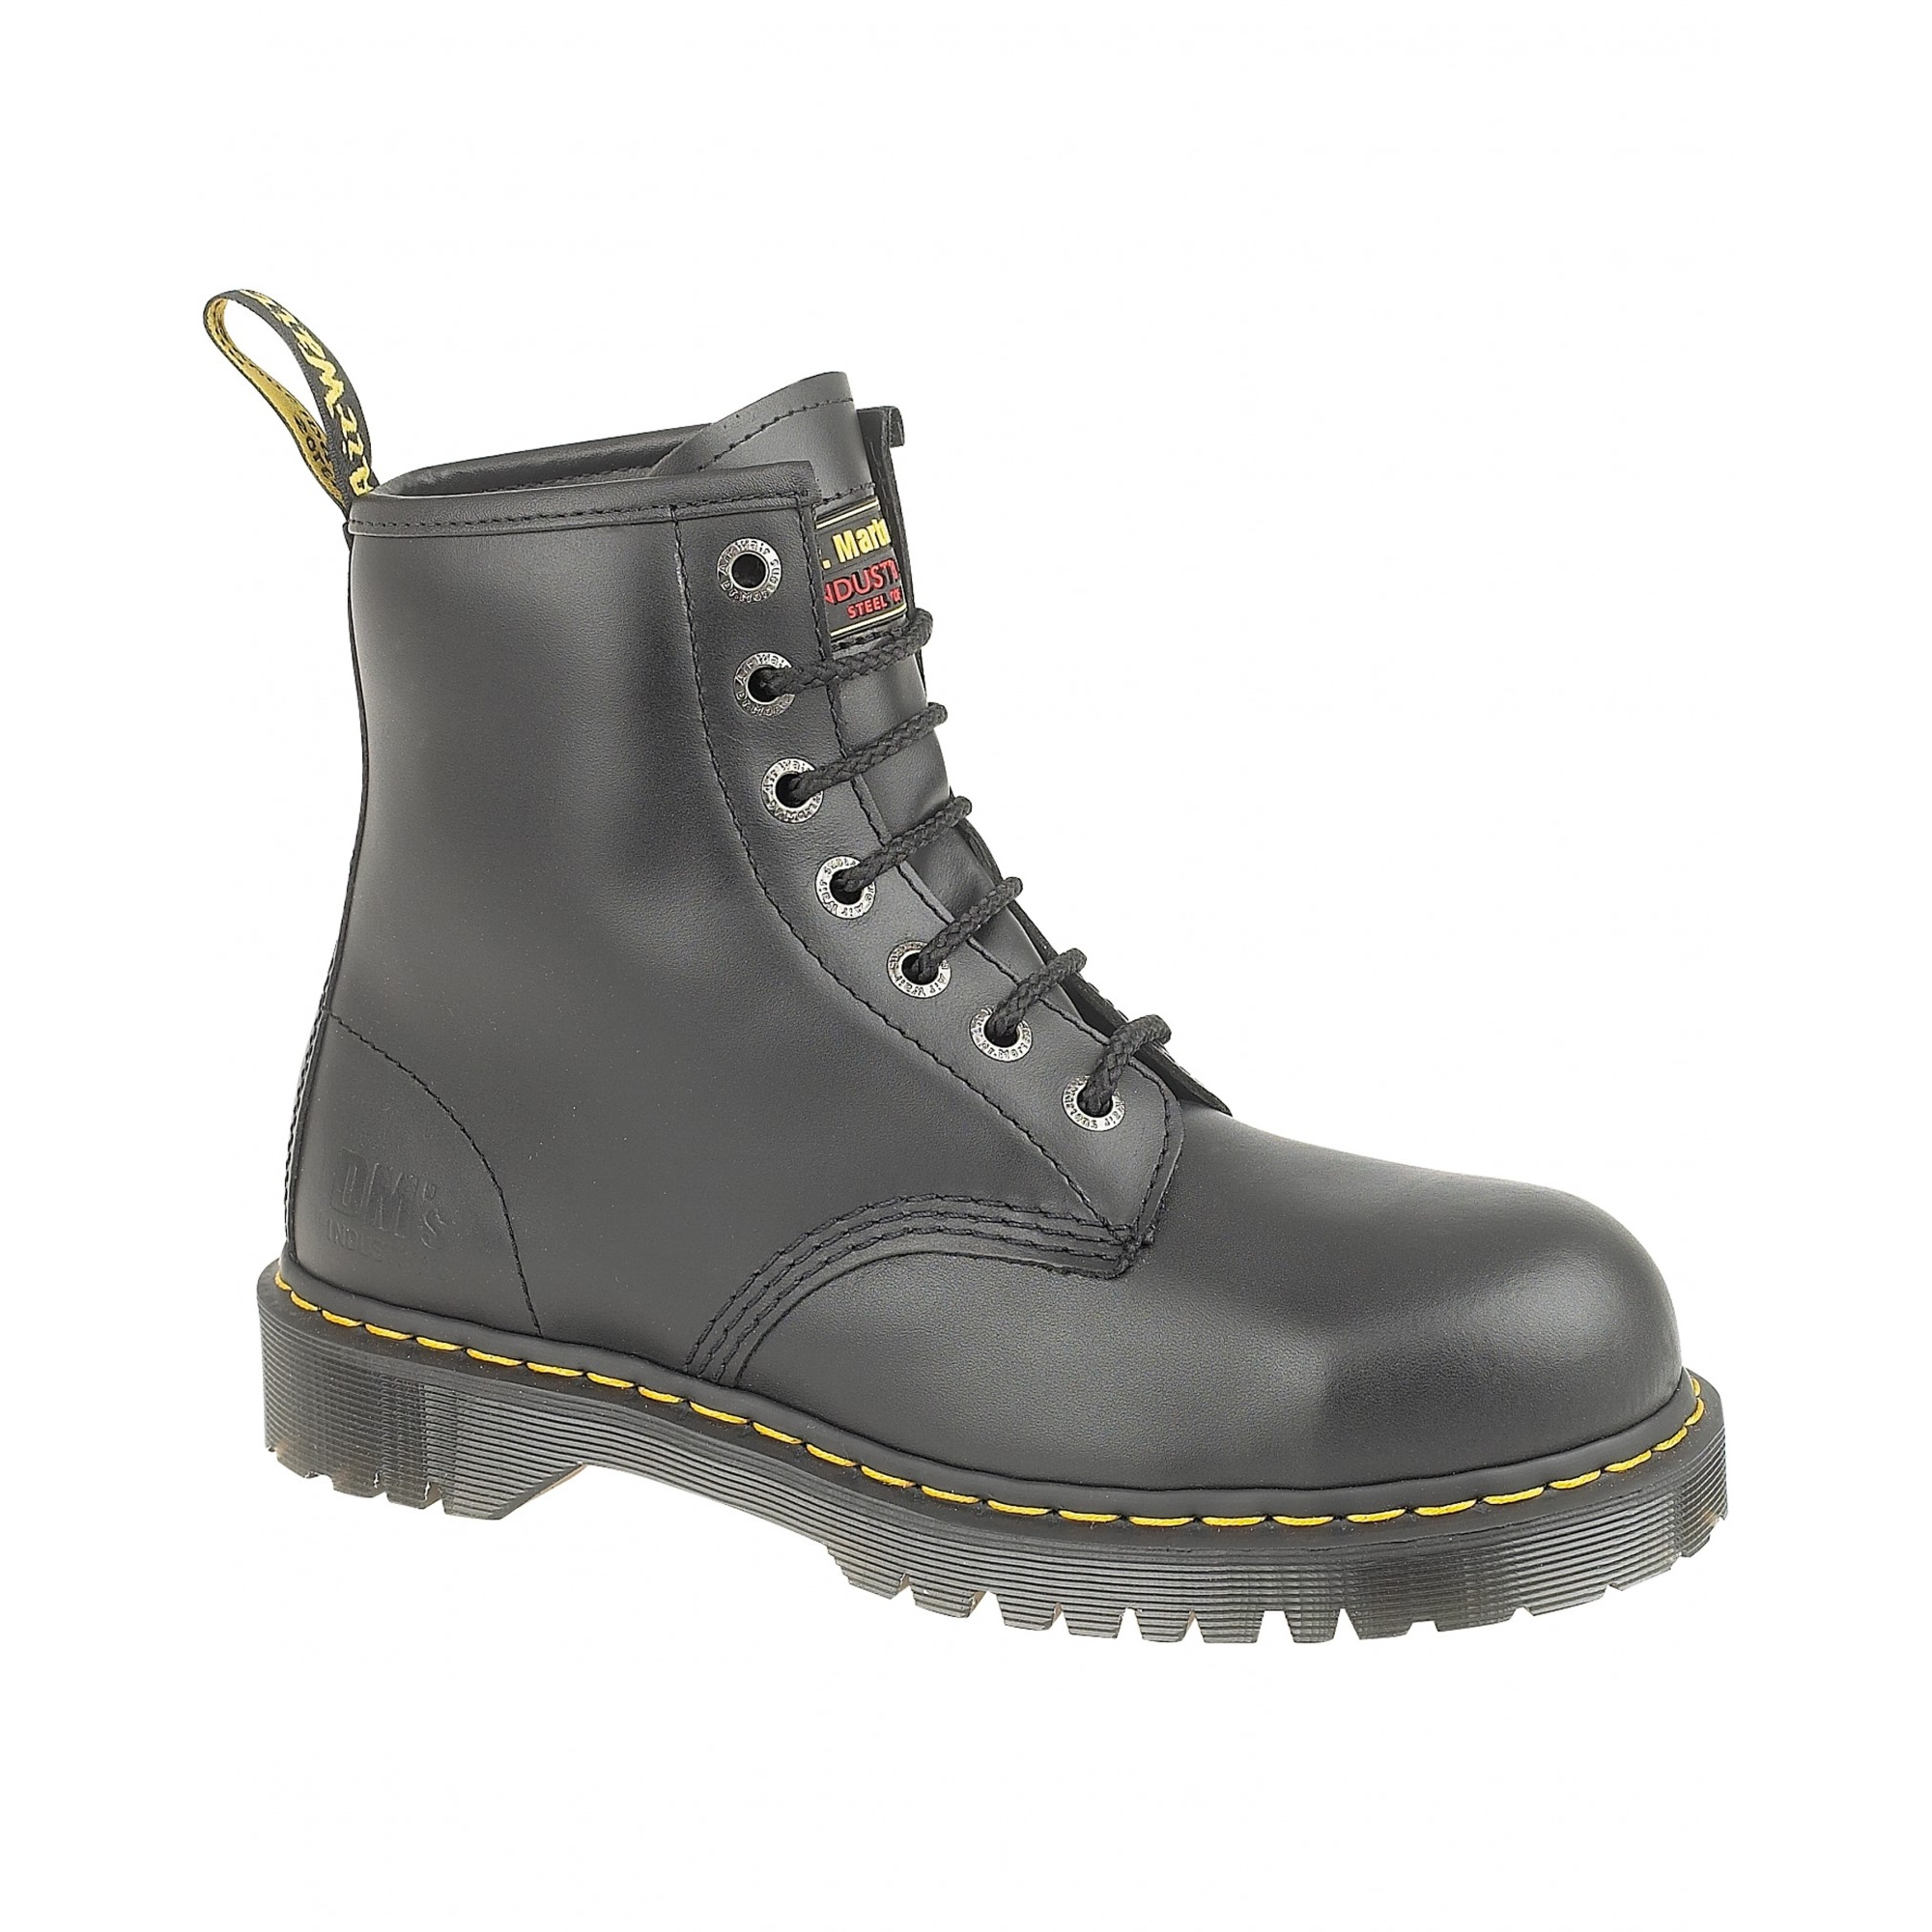 Dr Martens FS64 Lace-Up Boot / Mens Boots / Boots Safety (13 UK) (Black)